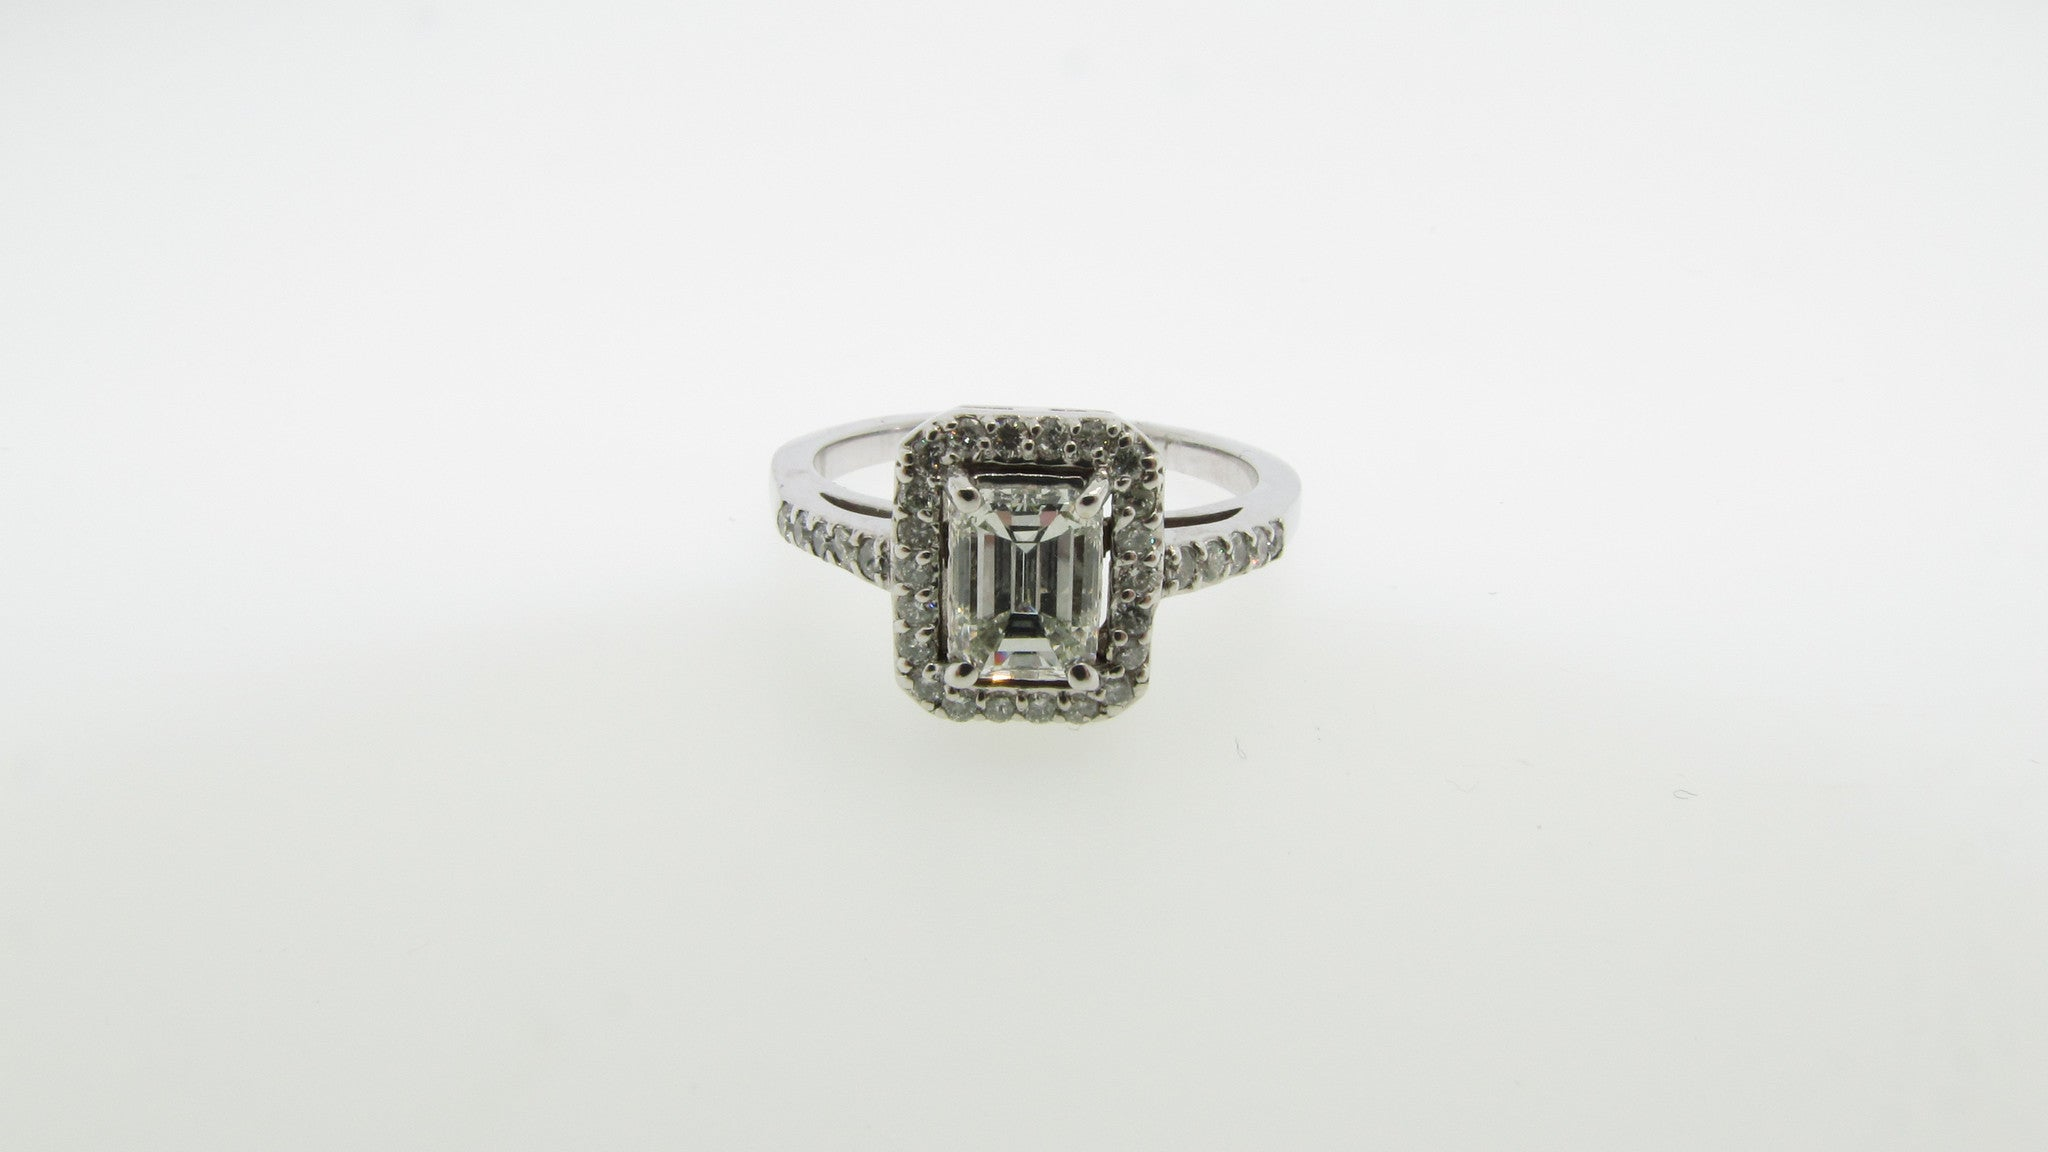 14K White Gold 1.24cttw Emerald Cut Center Diamond Engagement Ring